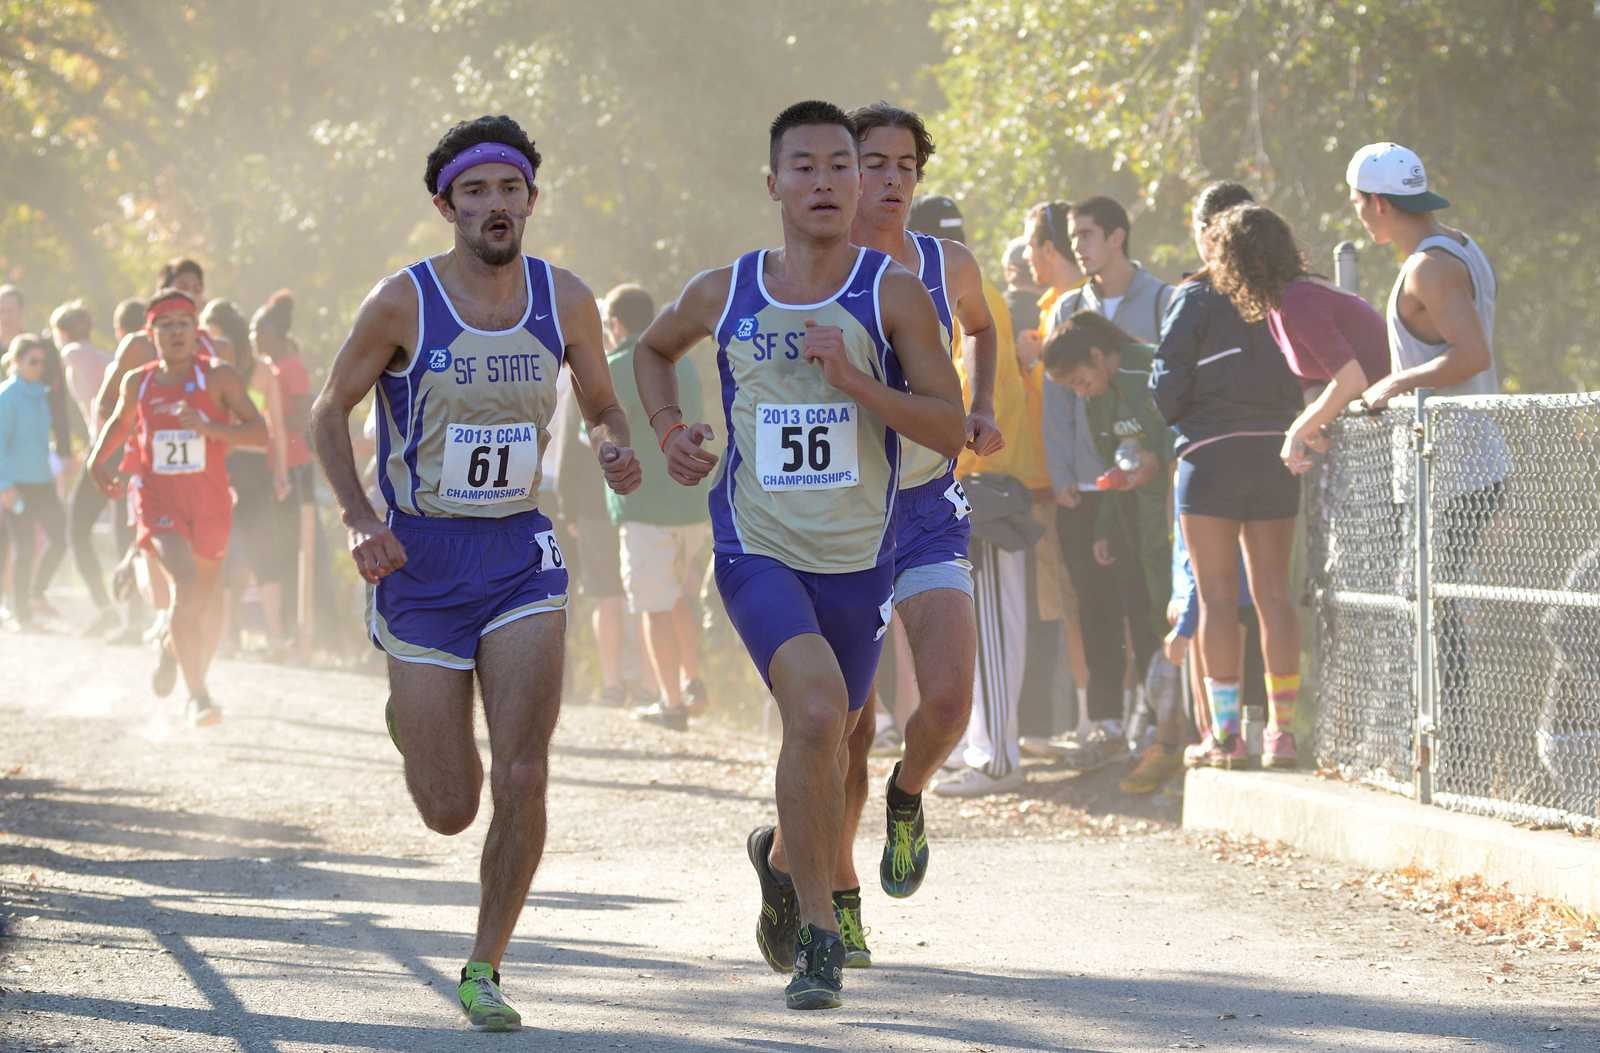 (Left to Right) Logan Smith, Ryan Chio, and Michael Garaventa run at the CCAA championships on Oct. 26, 2013 in Chico, Calif. The Gators' men's team placed 4th in the championship race. Photo courtesy of Dan Pambianco